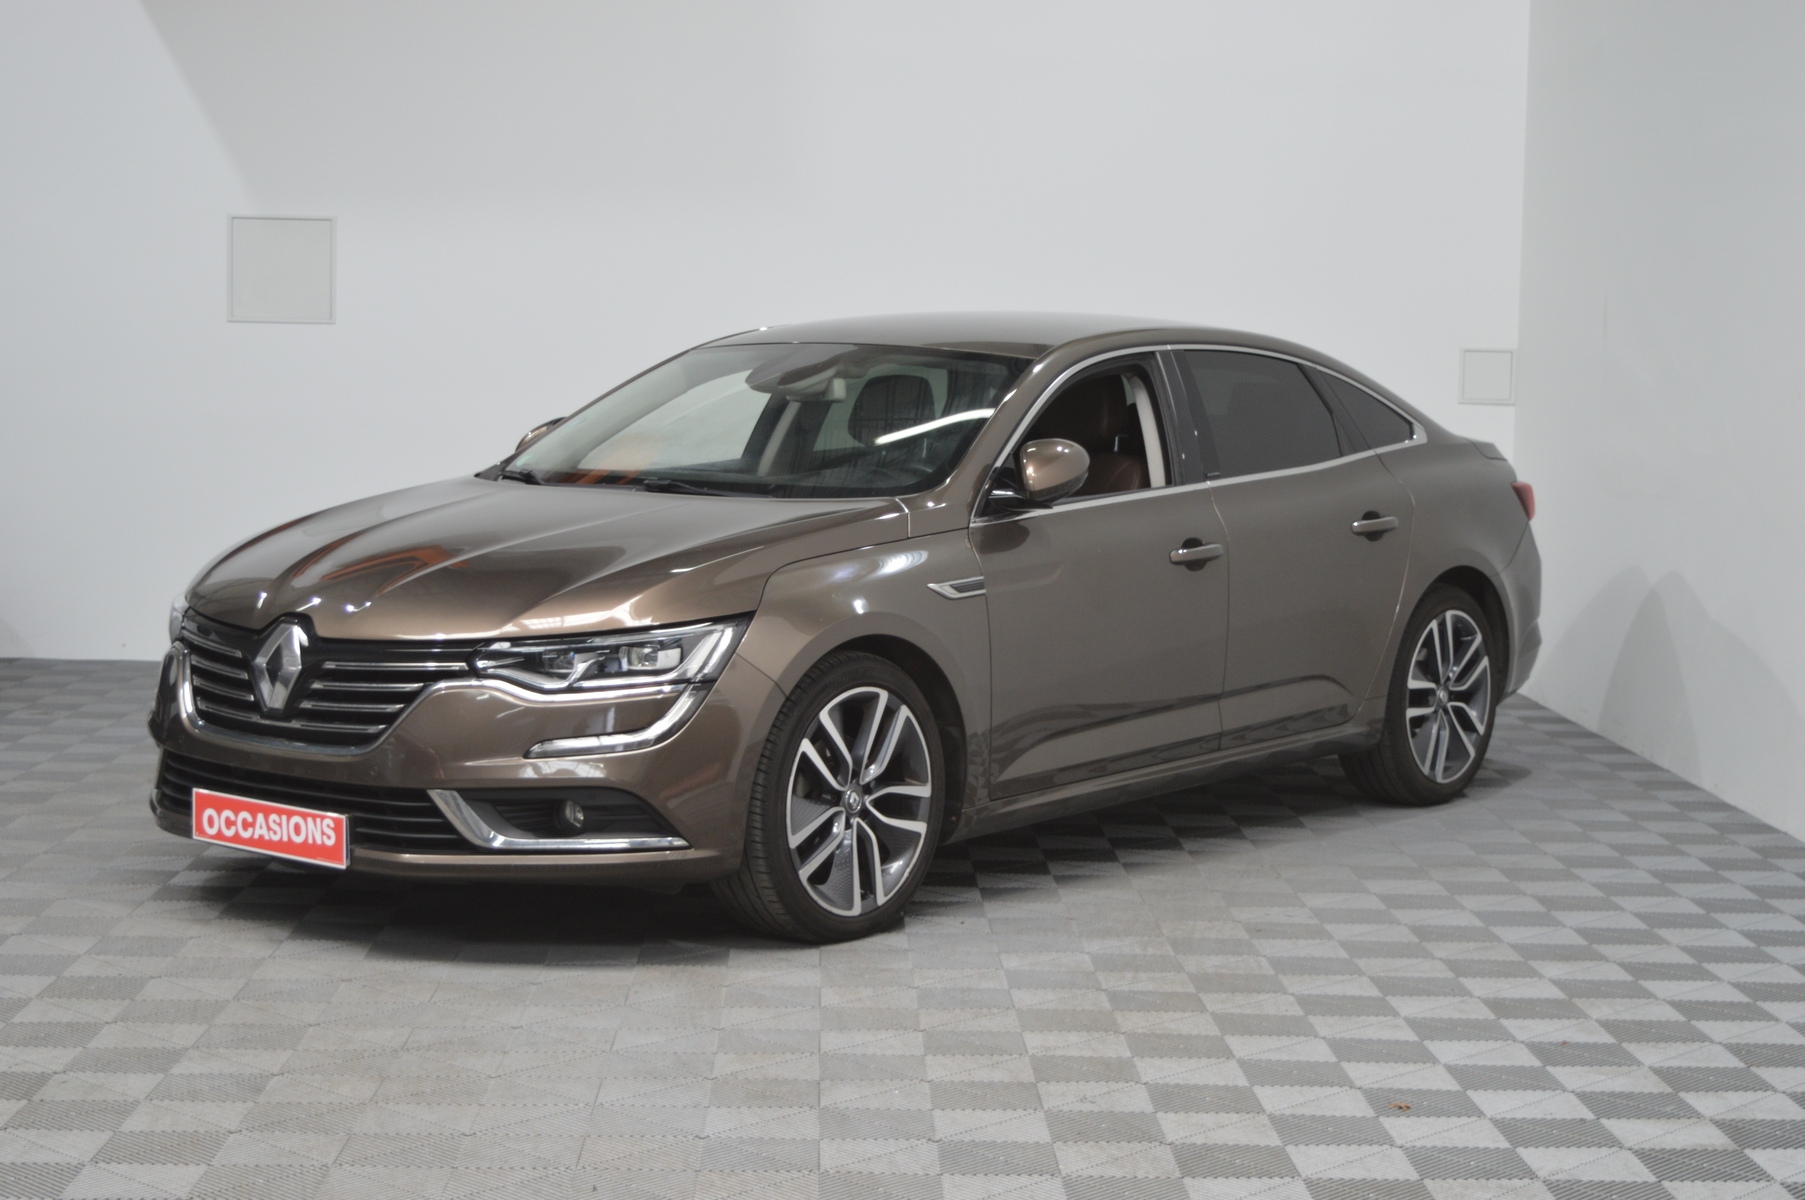 RENAULT TALISMAN 1.6 DCI 130CH ENERGY INTENS d'occasion